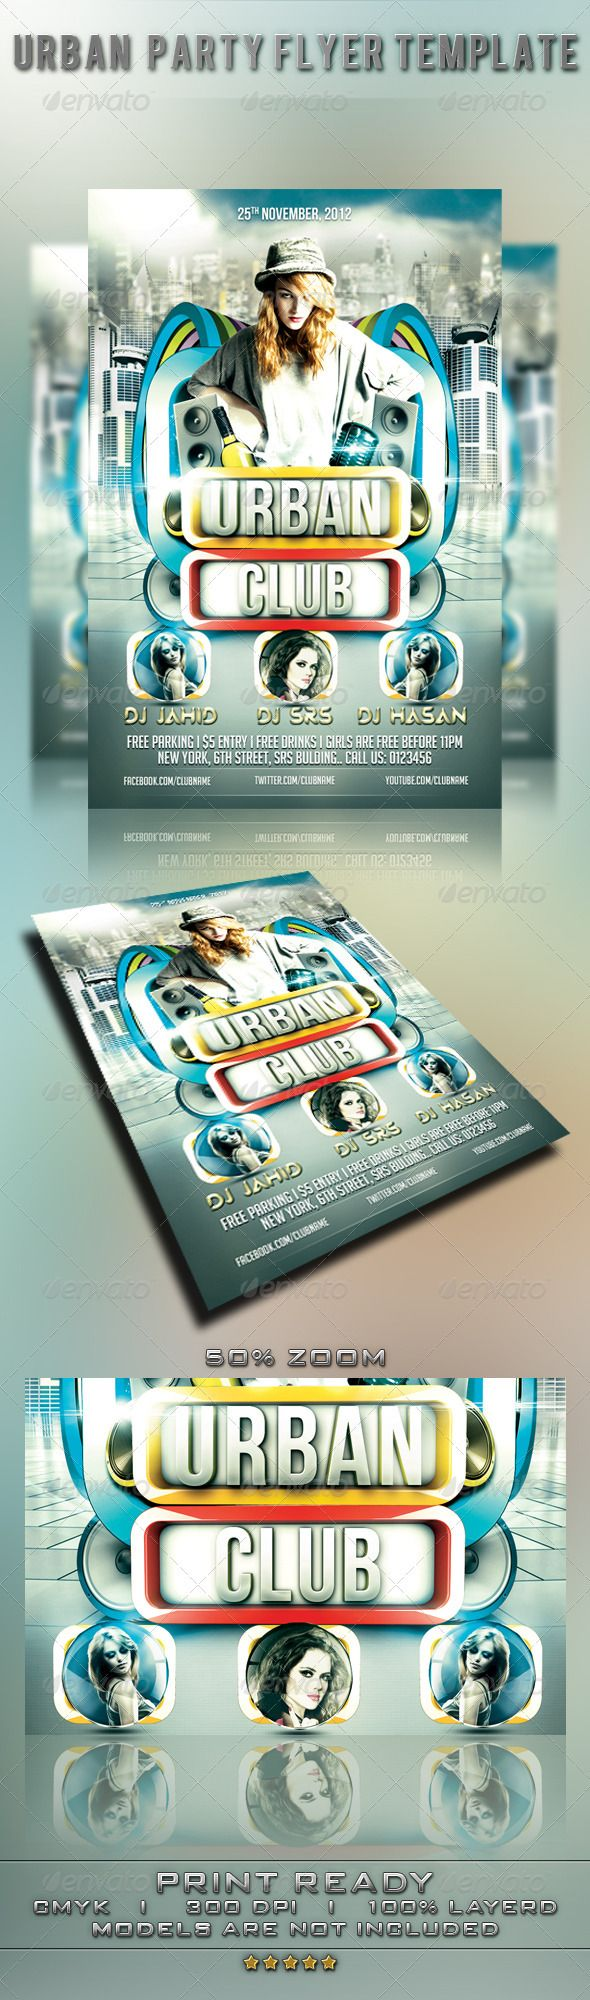 Urban Party Flyer Template GraphicRiver Include 1 psd